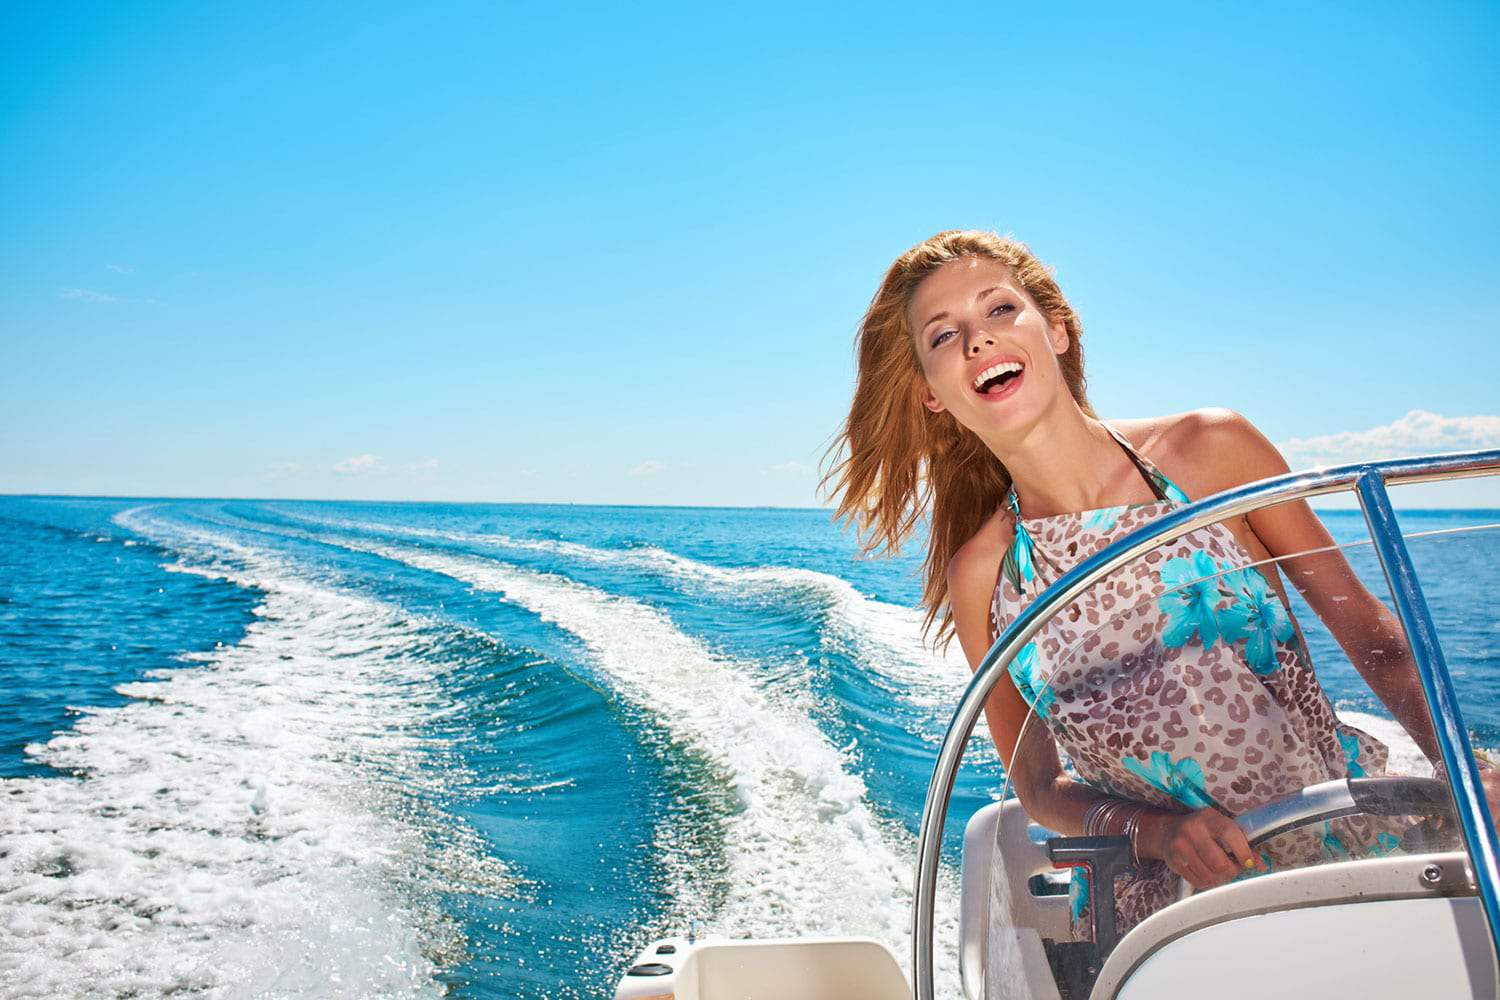 Top 5 Boating Tips for Beginners 2